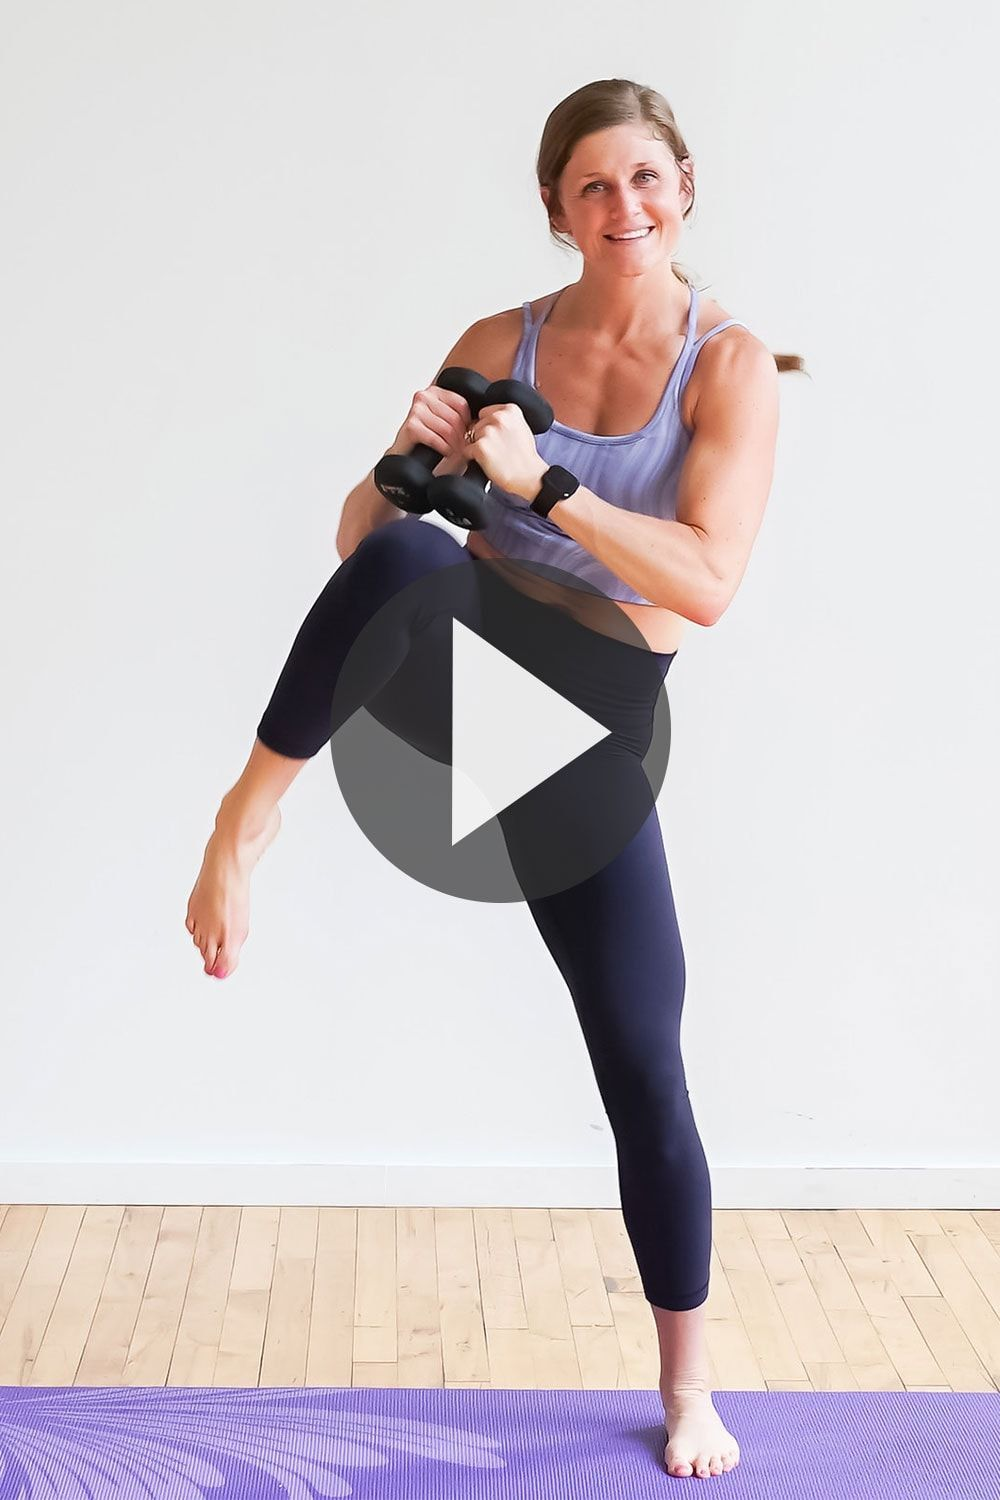 Press 'play' and follow along with this 30-Minute POWER BARRE CLASS AT HOME! It's 30 Minutes of barr...